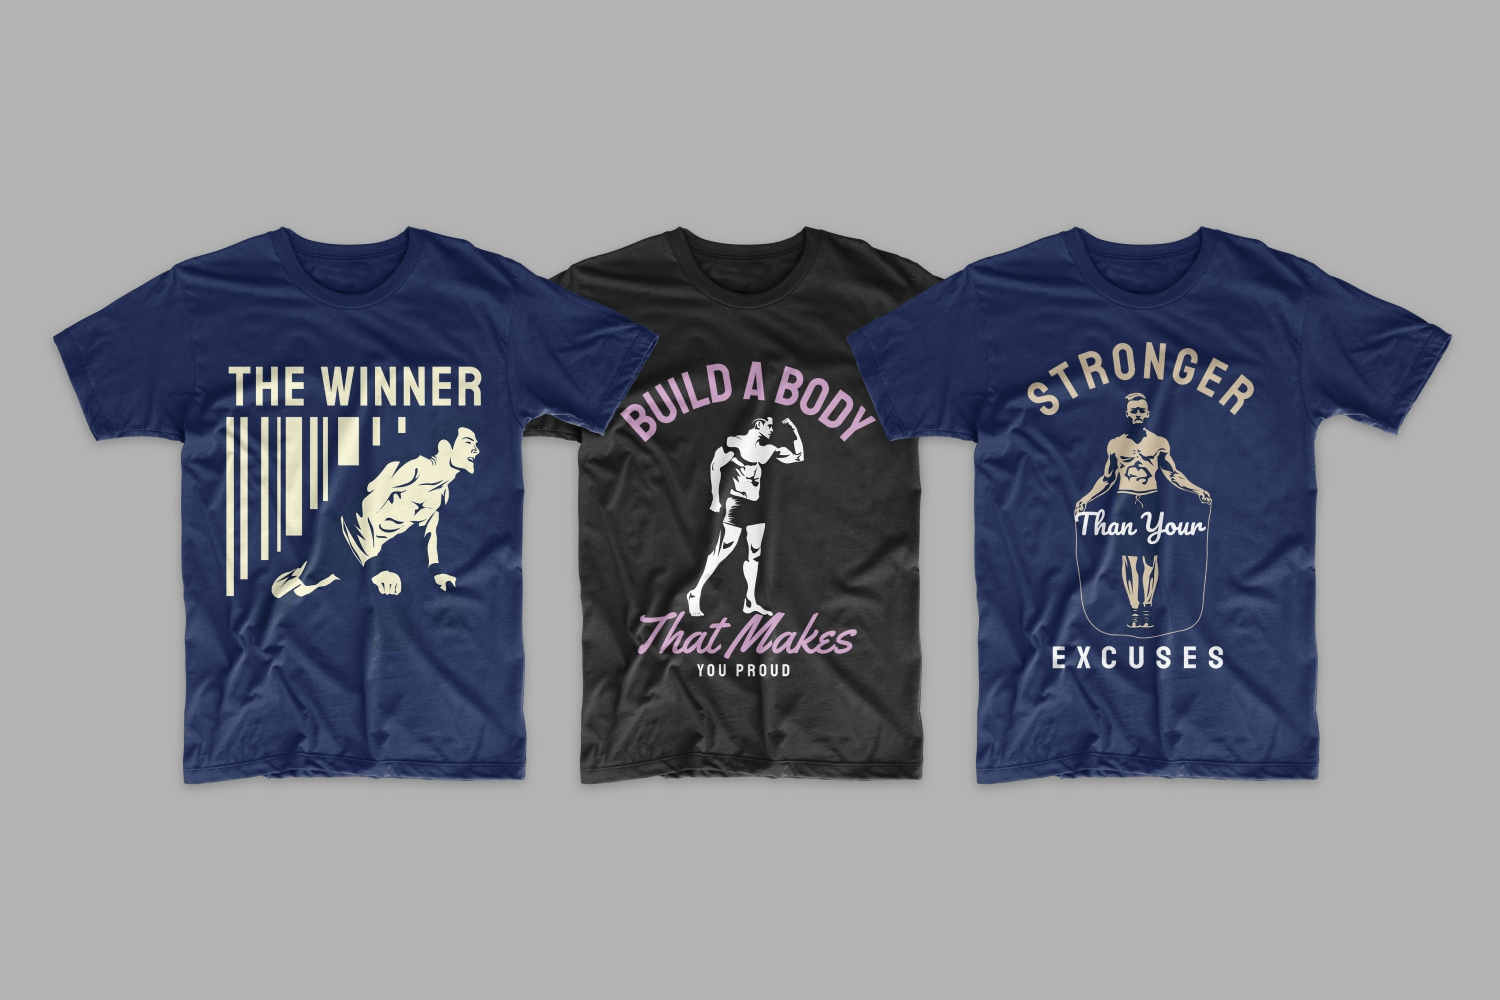 Three T-shirts with motivational phrases.